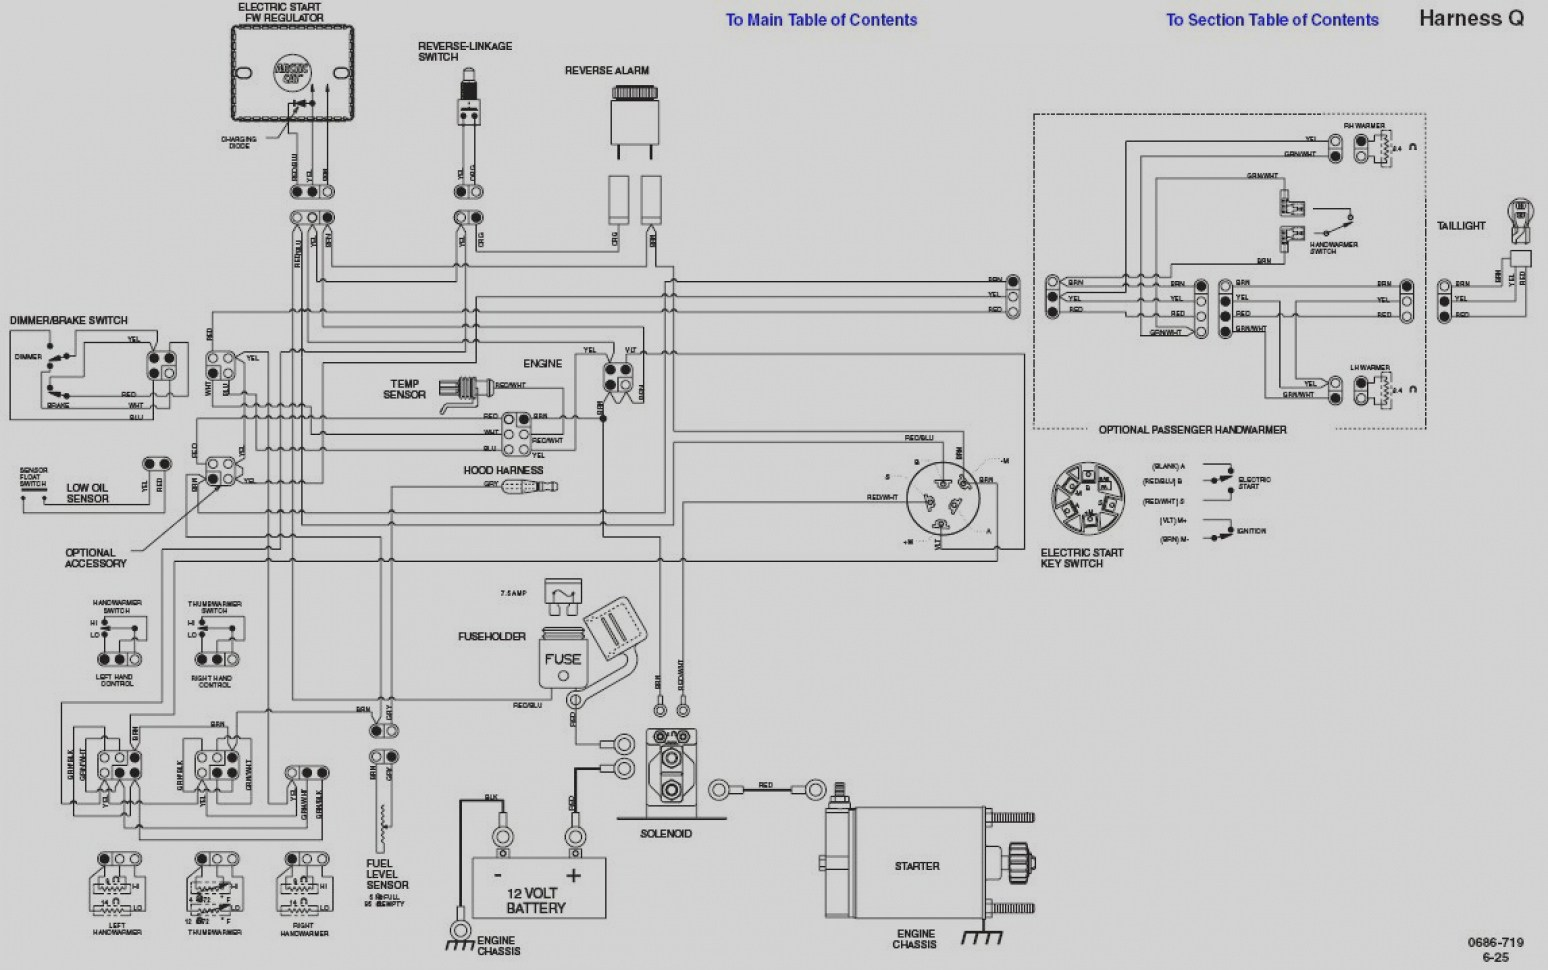 Enjoyable 2011 Ranger Wiring Diagram Wiring Diagram Data Wiring Cloud Inklaidewilluminateatxorg